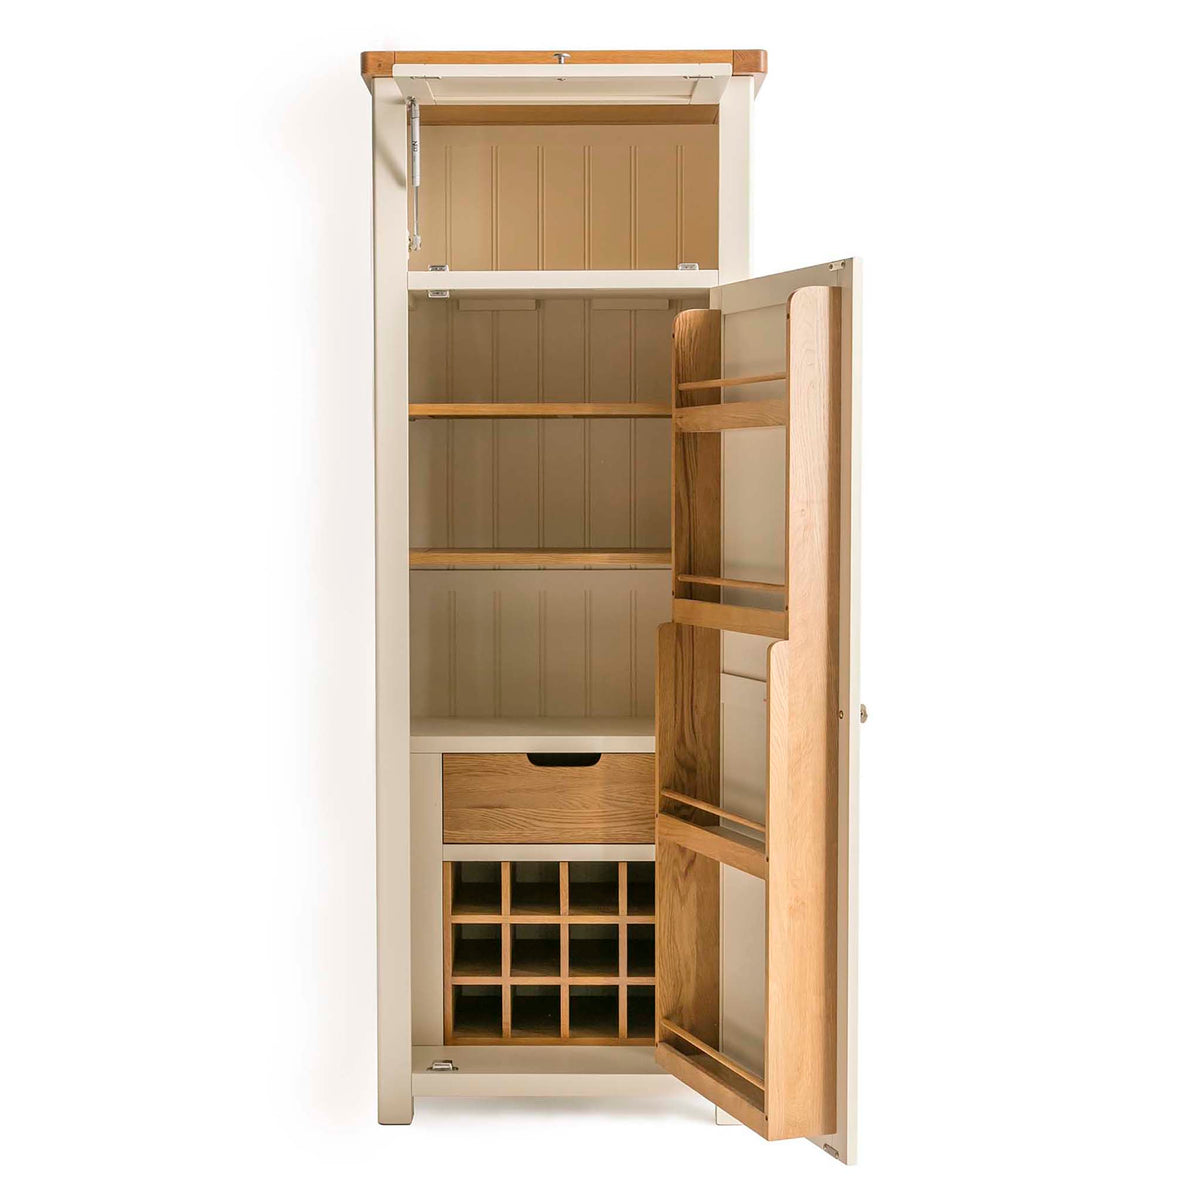 Padstow Cream Slim Larder Unit by Roseland Furniture